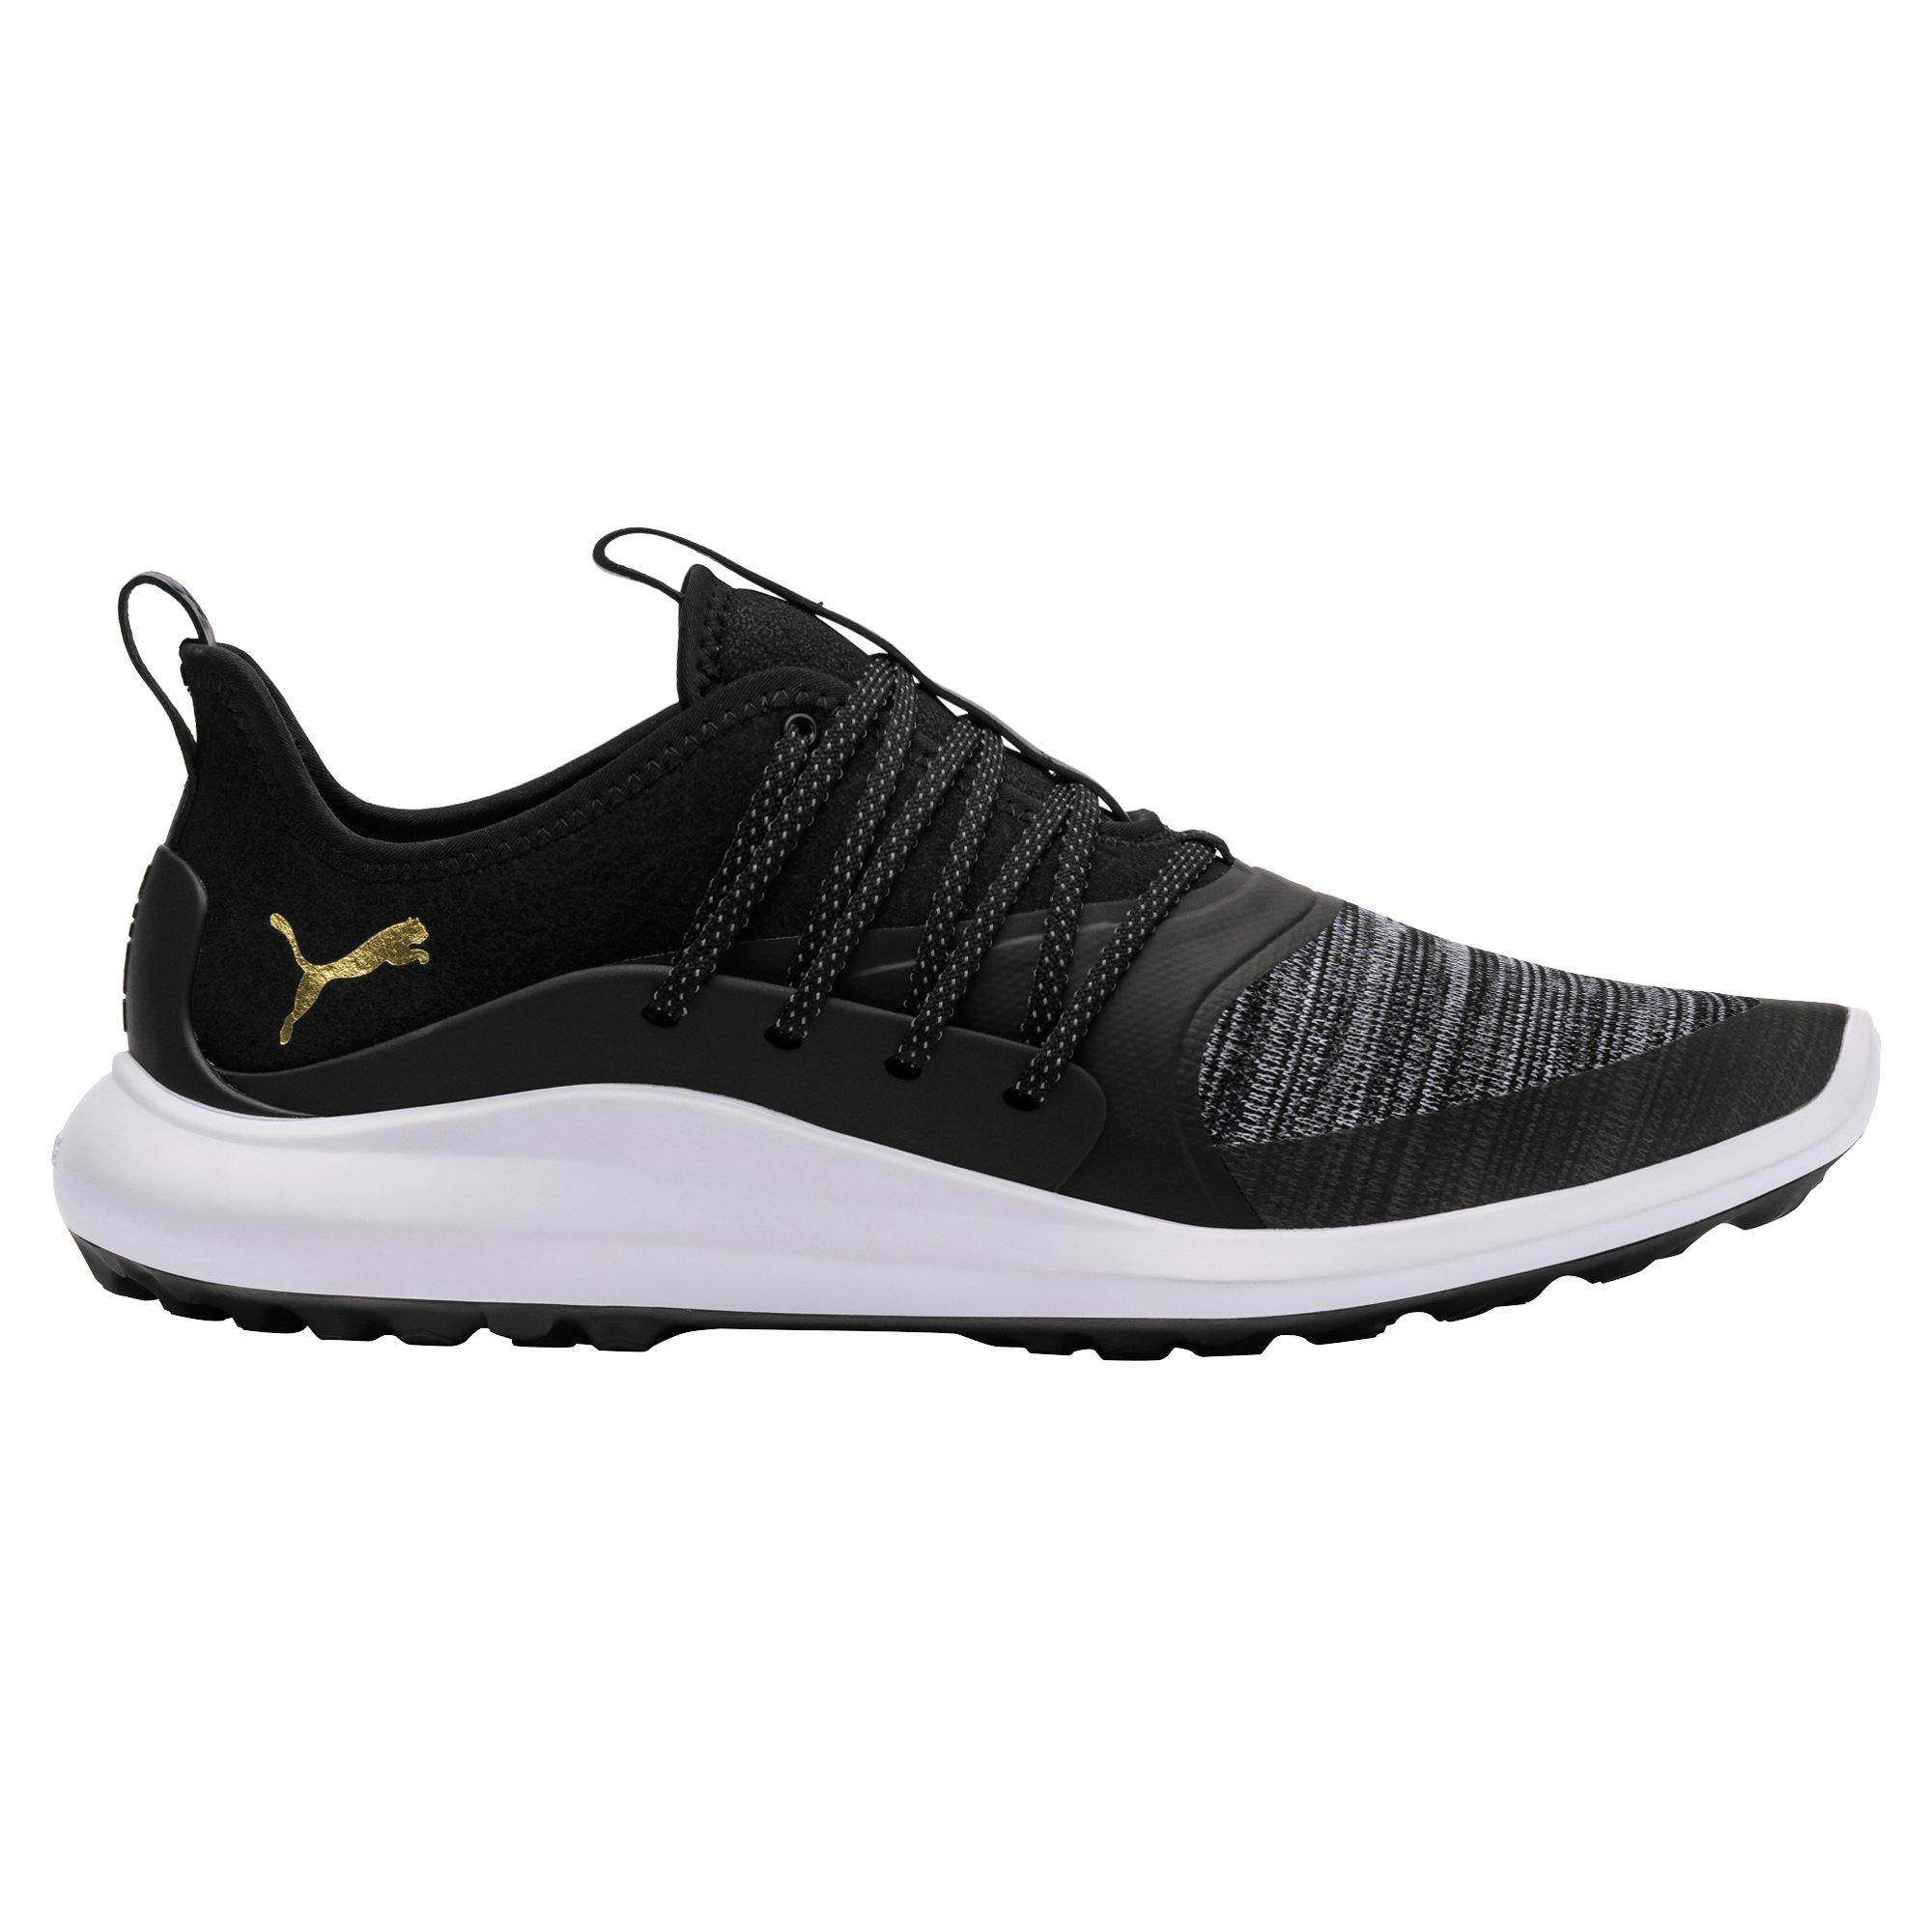 Men's Ignite Nxt Solelace Spikeless Golf Shoe - BLACK/GREY